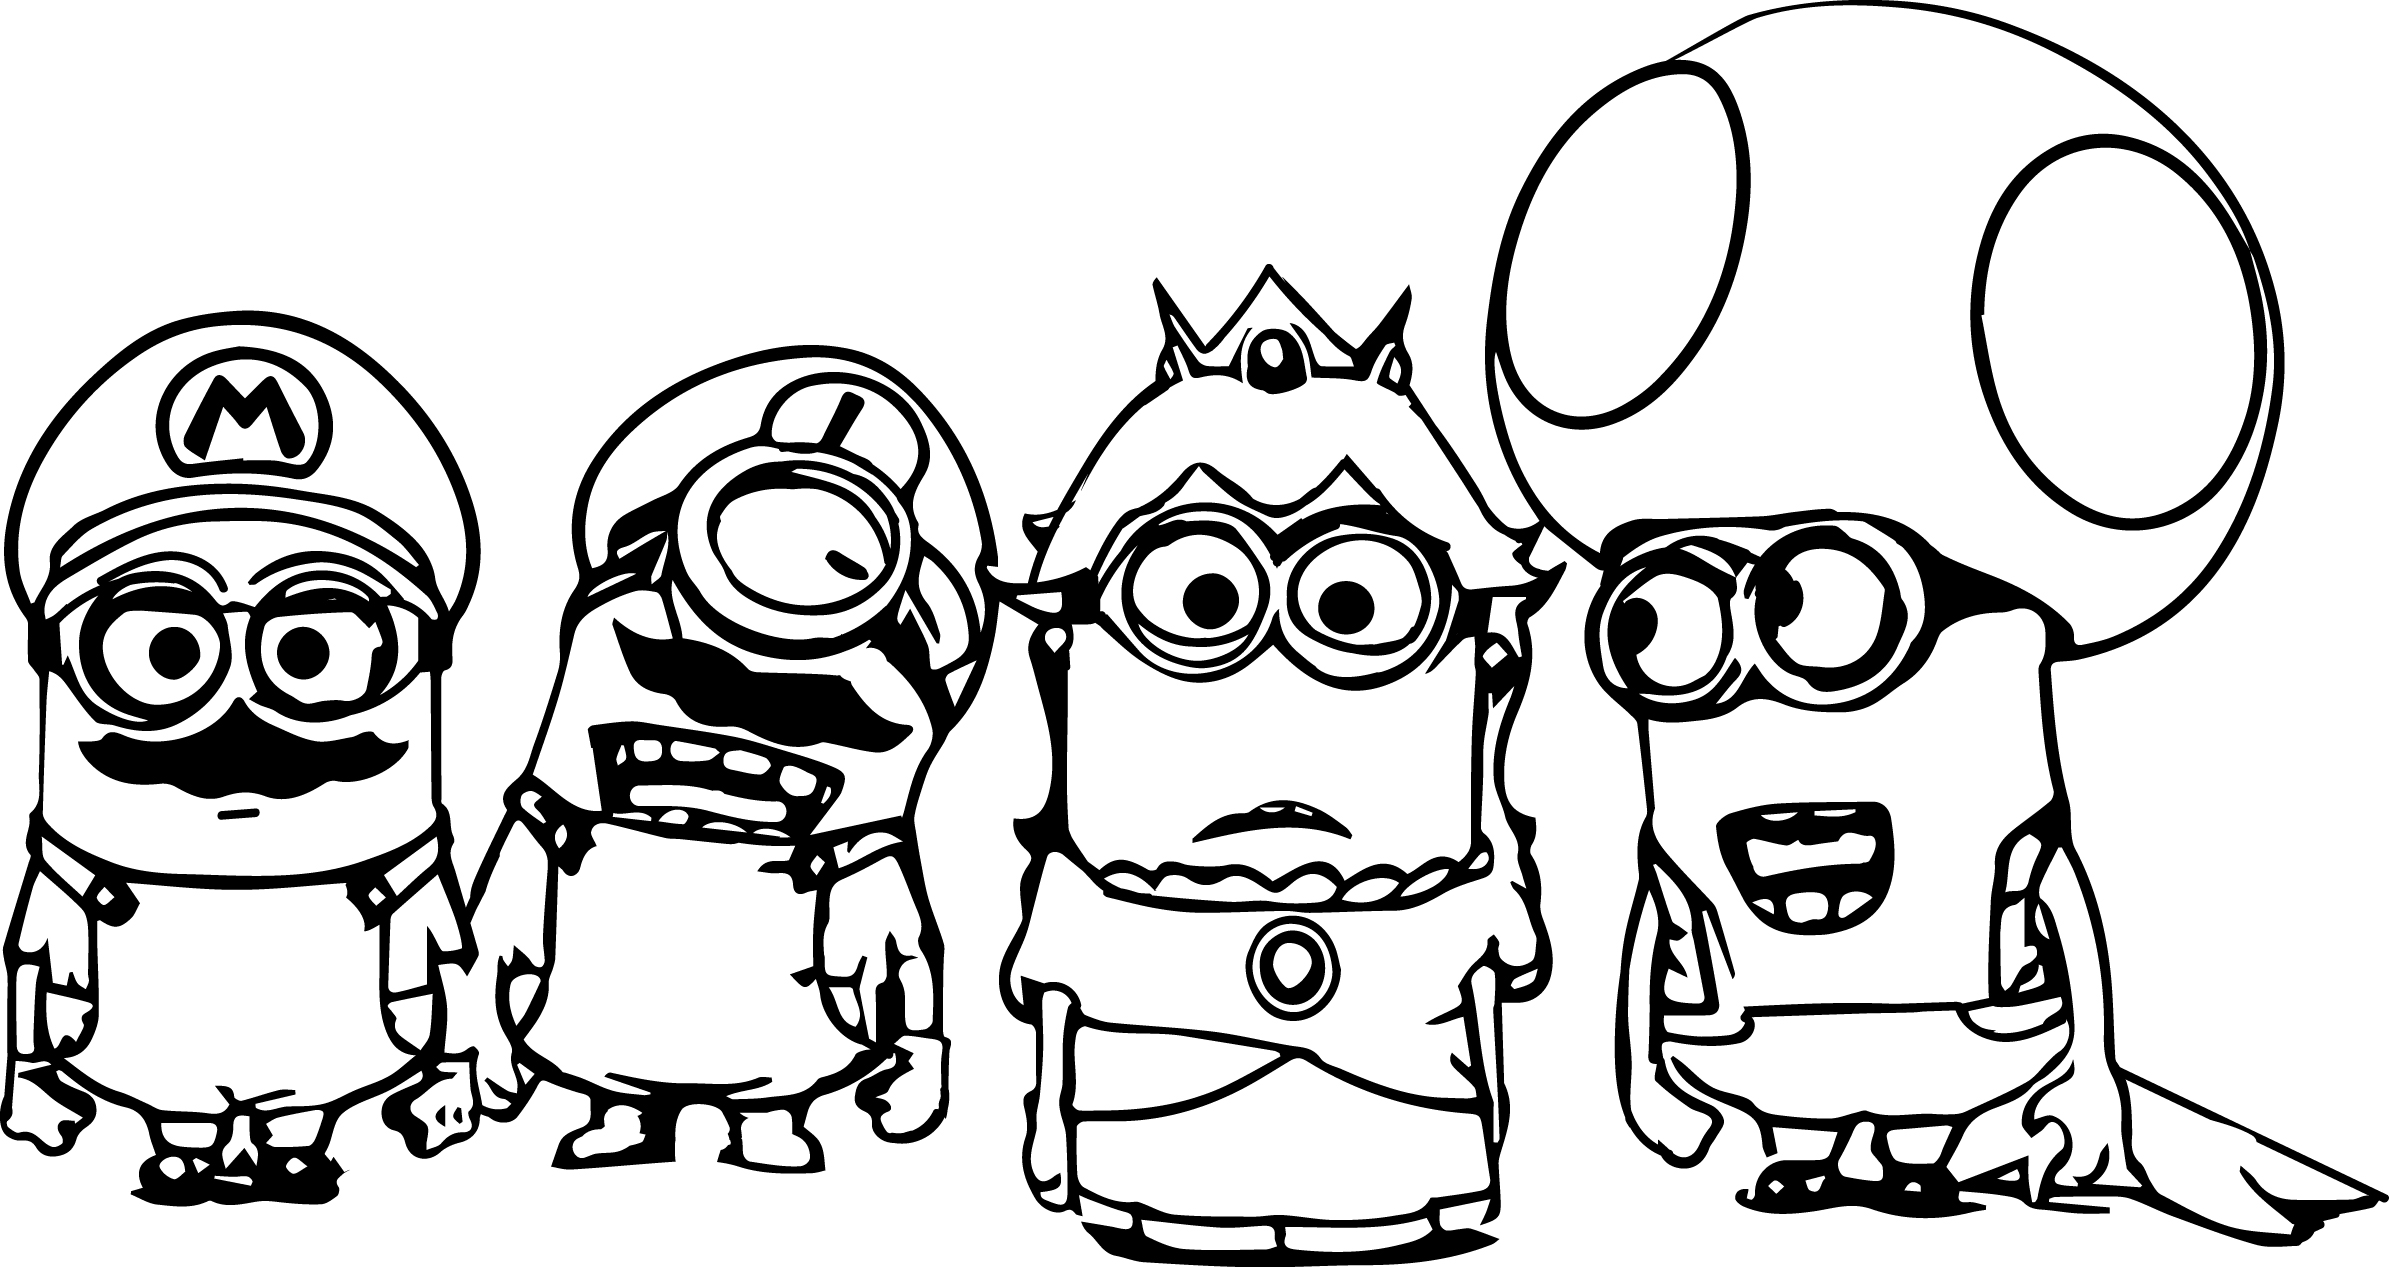 Super mario minions coloring page for Mario color page